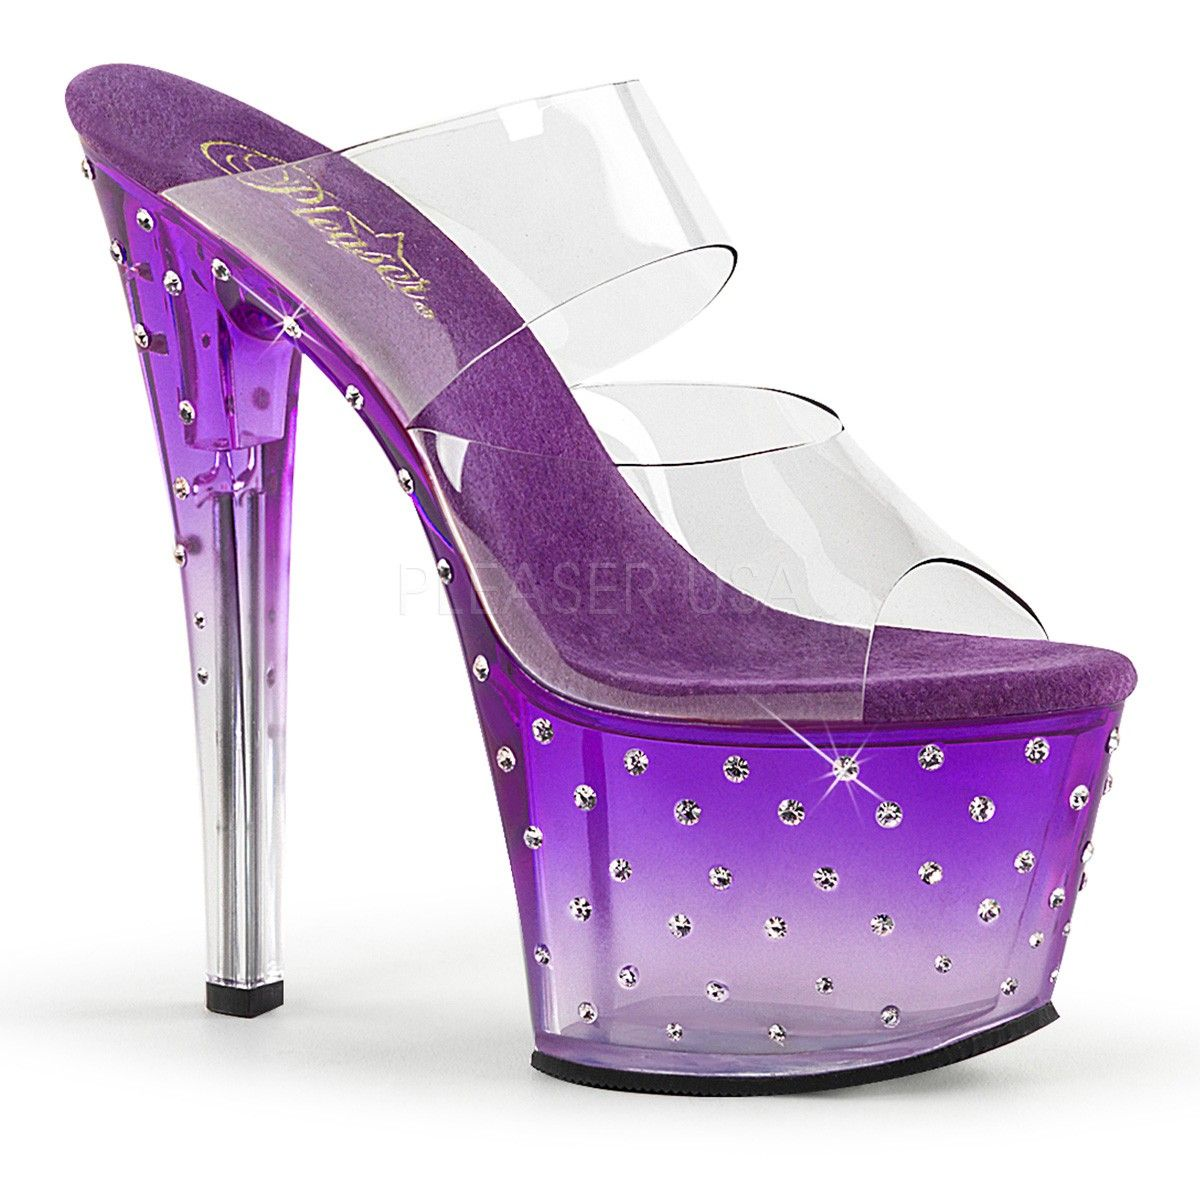 What Purple stripper shoes